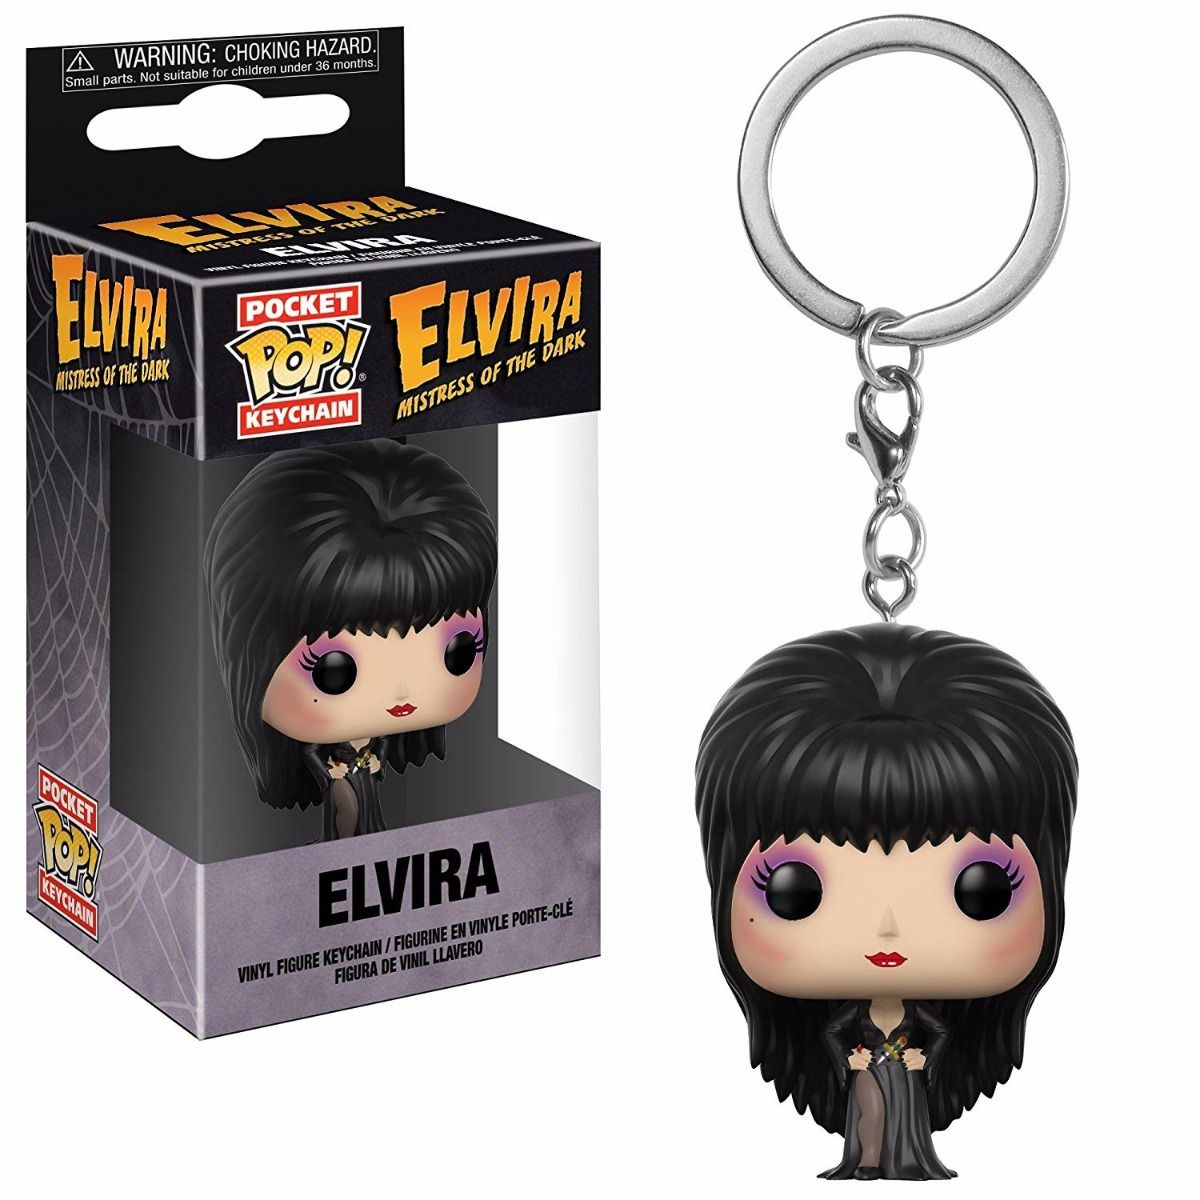 POCKET POP KEYCHAIN CHAVEIRO FUNKO Elvira